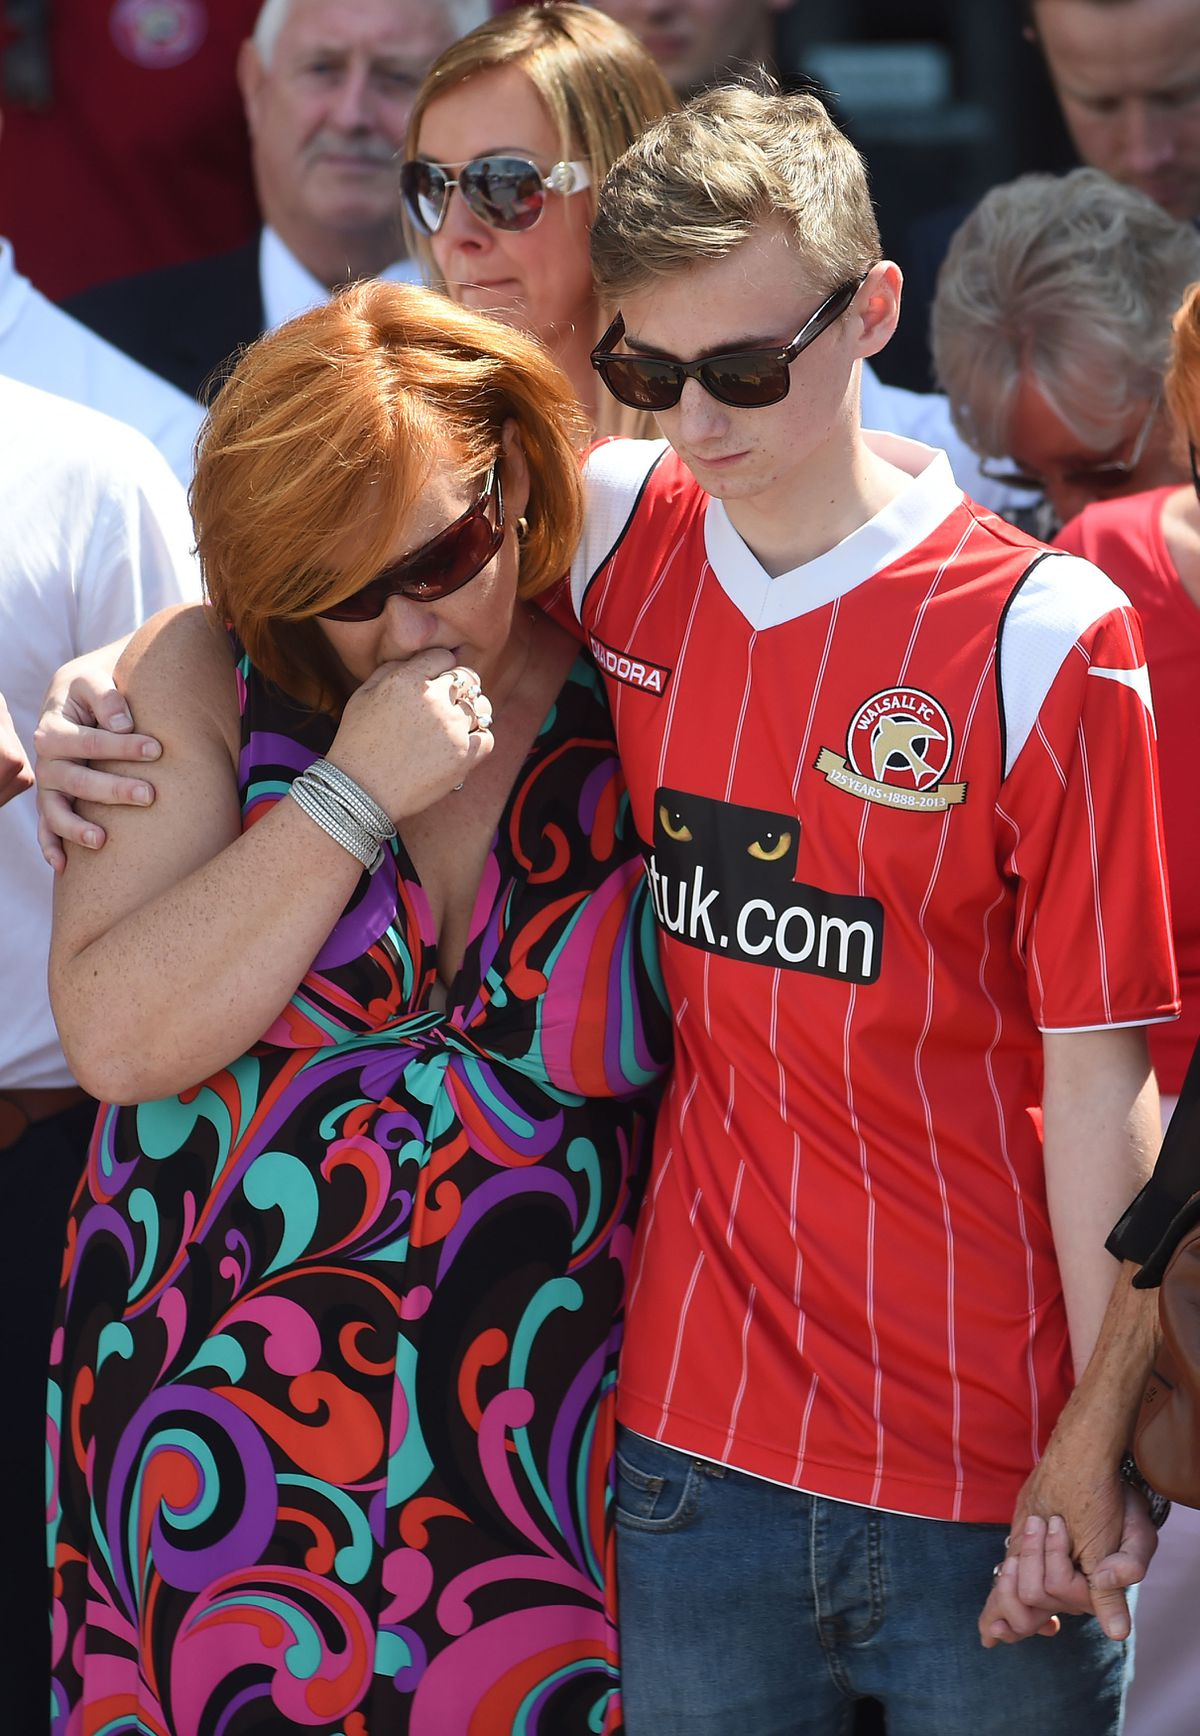 Owen comforts his mother at the Banks's Stadium days after the attack